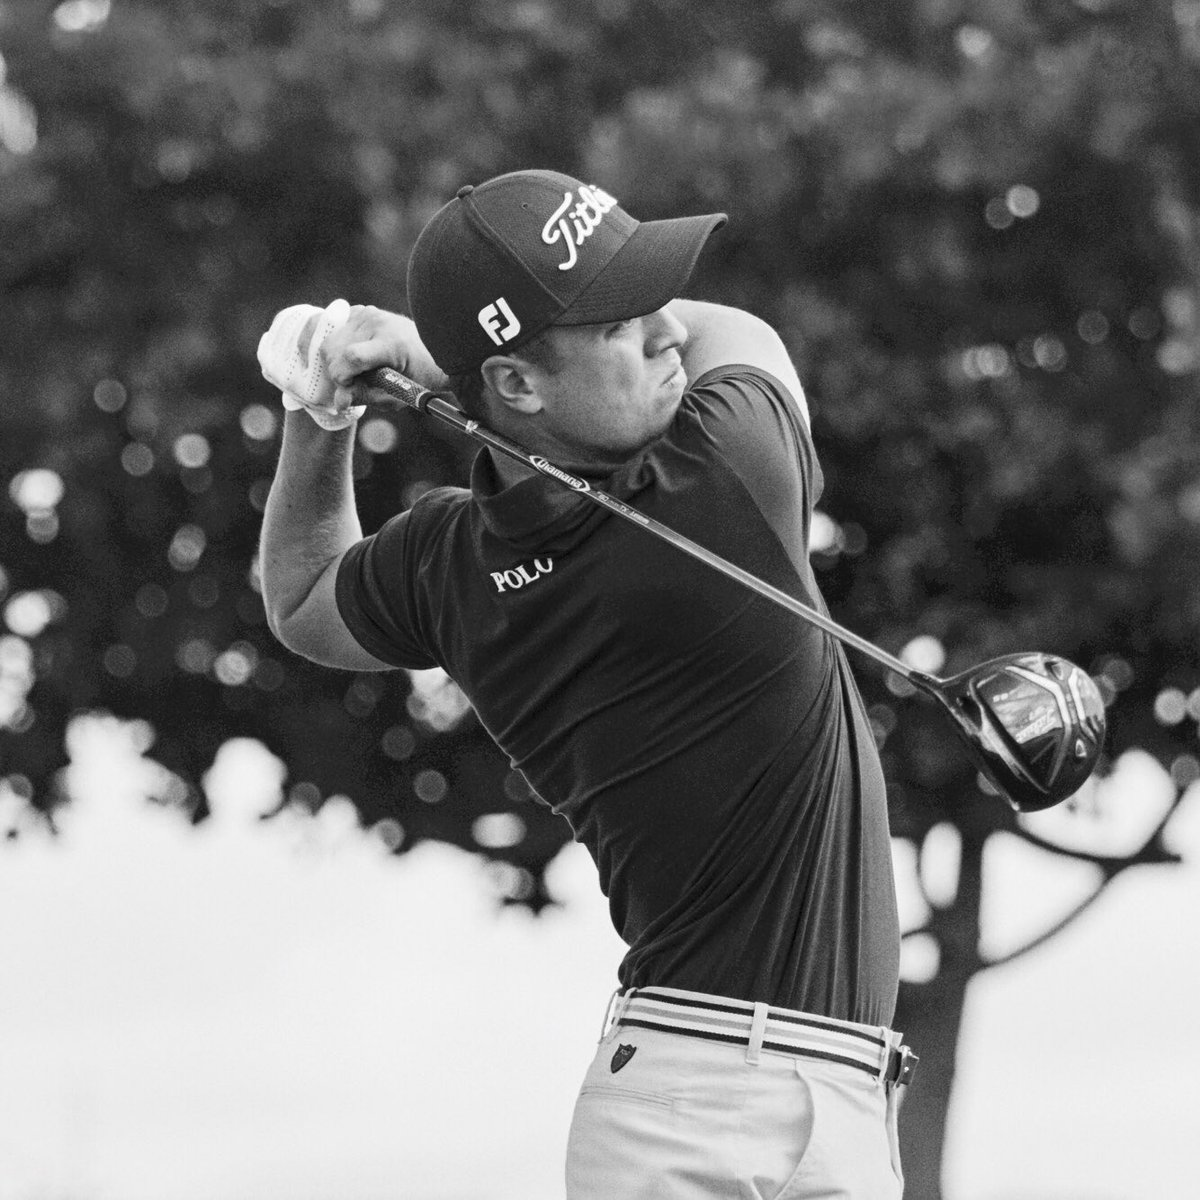 Congratulations to #PoloGolf Ambassador @JustinThomas34 on becoming #1 in the Official World Golf Rankings! https://t.co/zQxMziDLp3